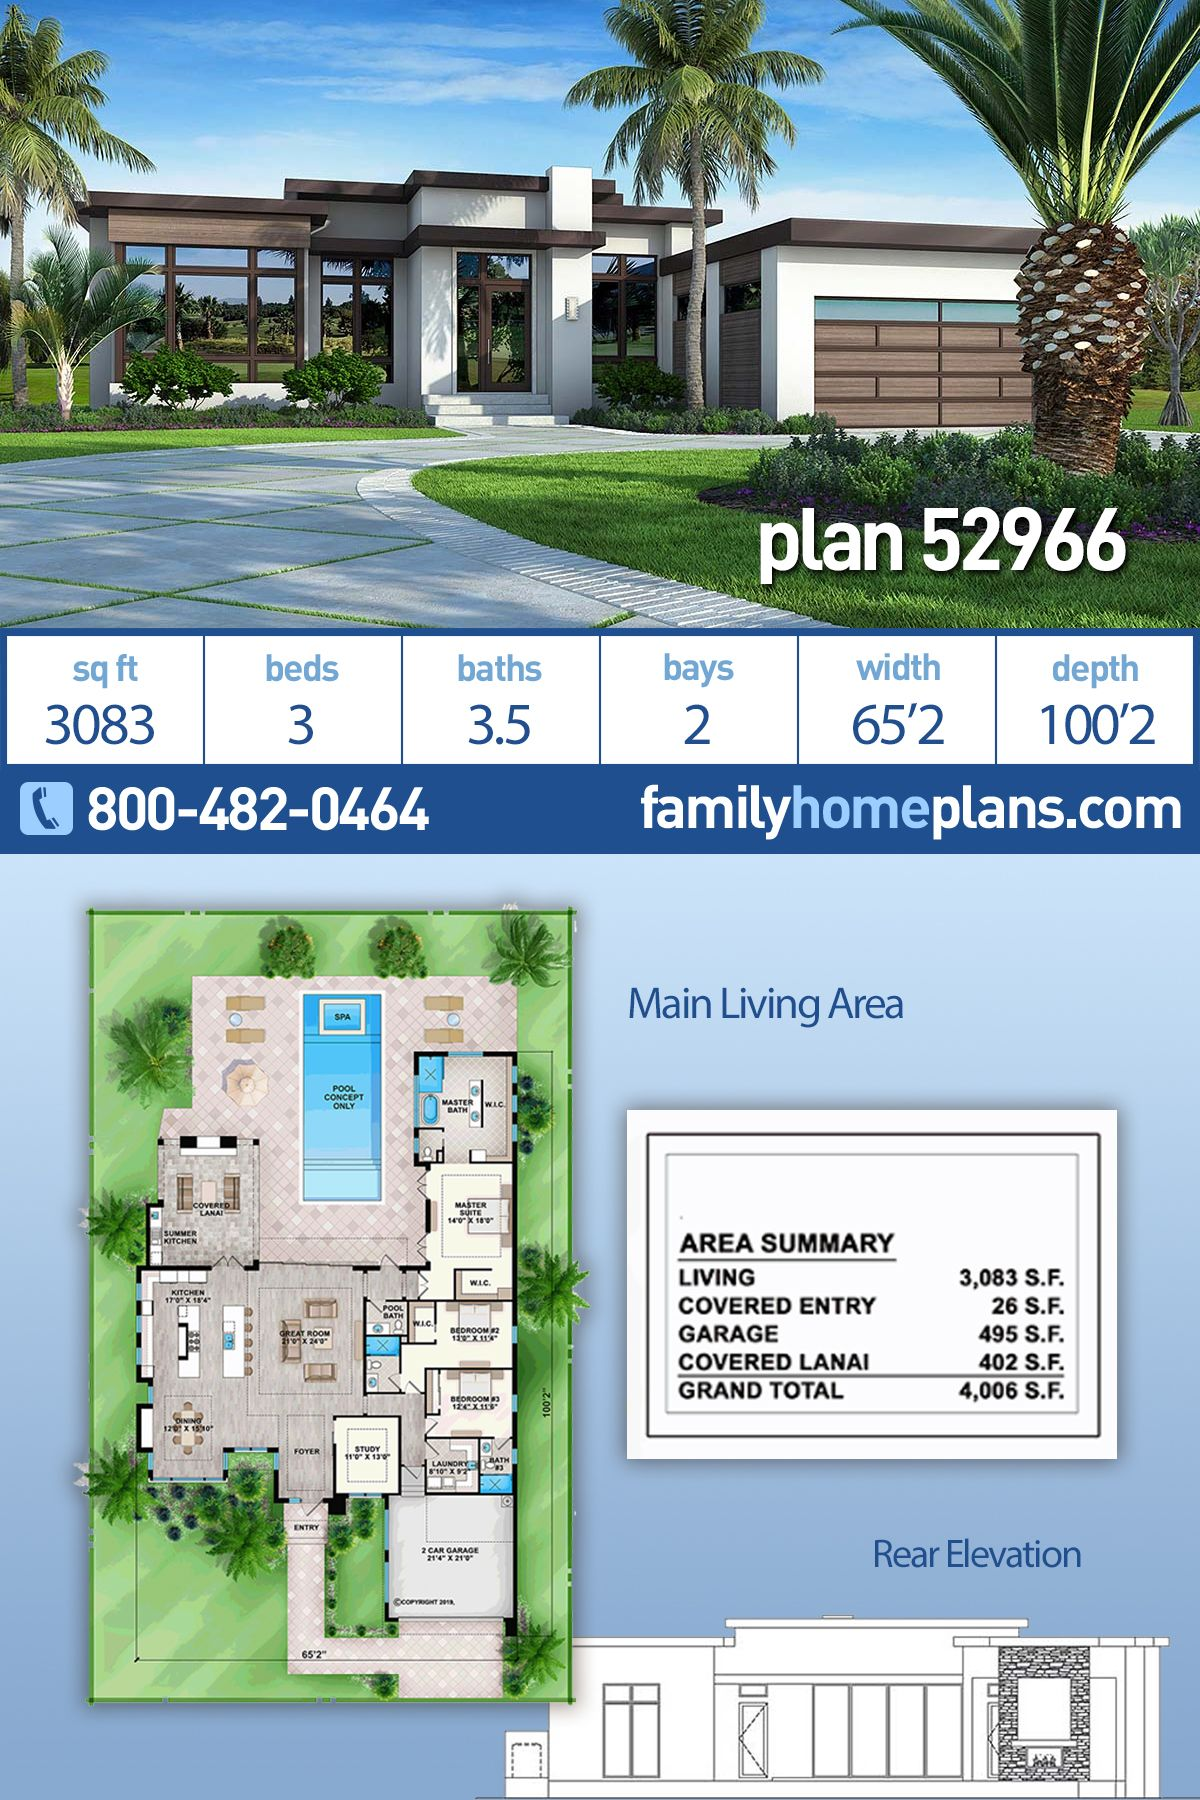 New Contemporary House Plan A Modern Home Design Florida Style At 3083 Sq Ft 3 Beds 3 5 Bat Contemporary House Plans Modern House Plans Beach House Plans